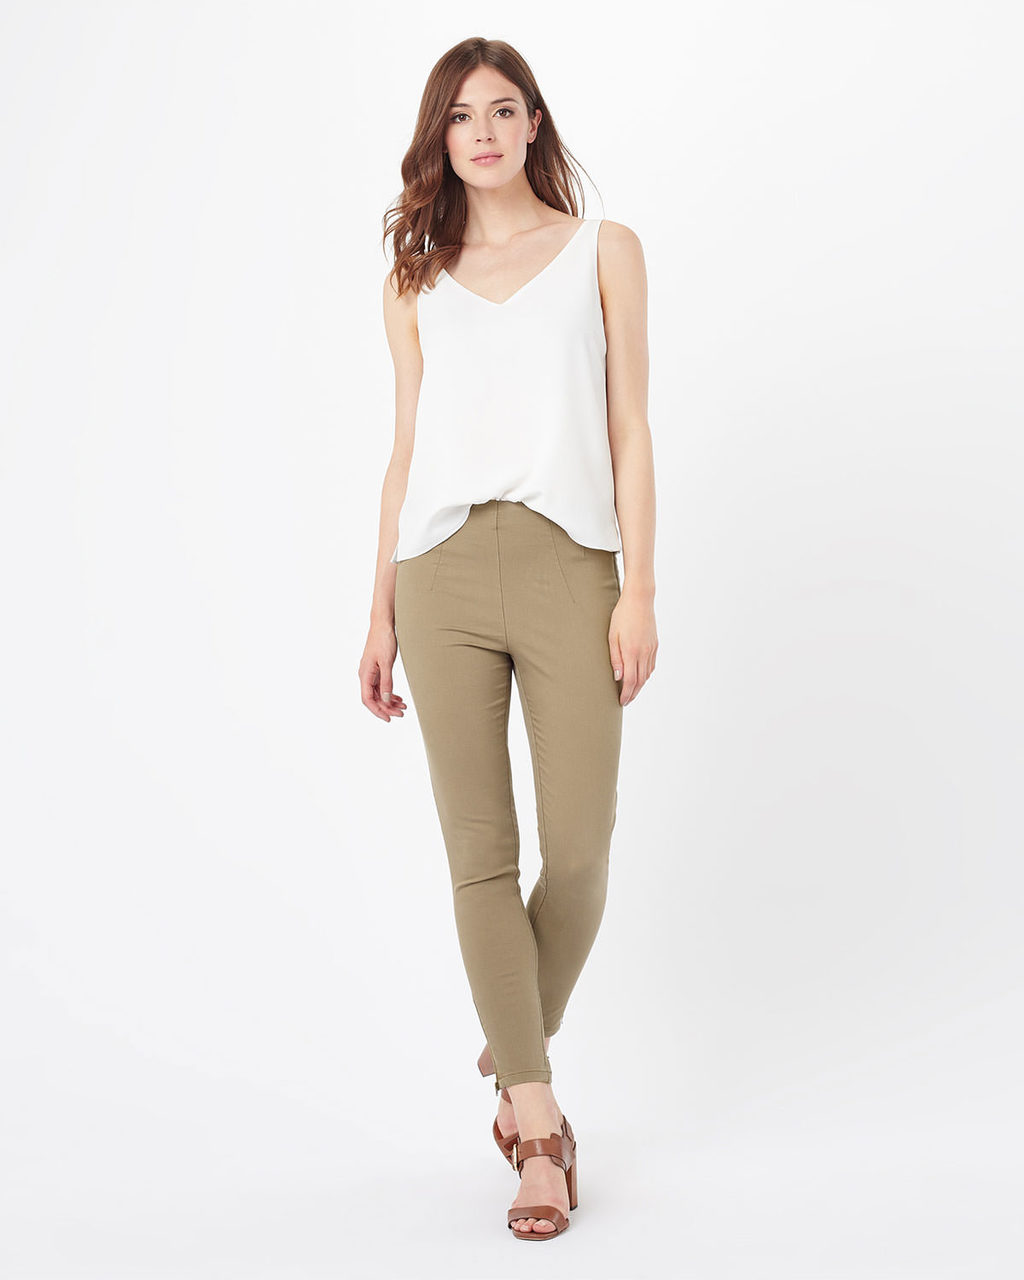 Amina Zip 7/8th Jegging - style: skinny leg; length: standard; pattern: plain; pocket detail: traditional 5 pocket; waist: mid/regular rise; predominant colour: camel; occasions: casual; fibres: cotton - stretch; texture group: denim; pattern type: fabric; season: s/s 2016; wardrobe: highlight